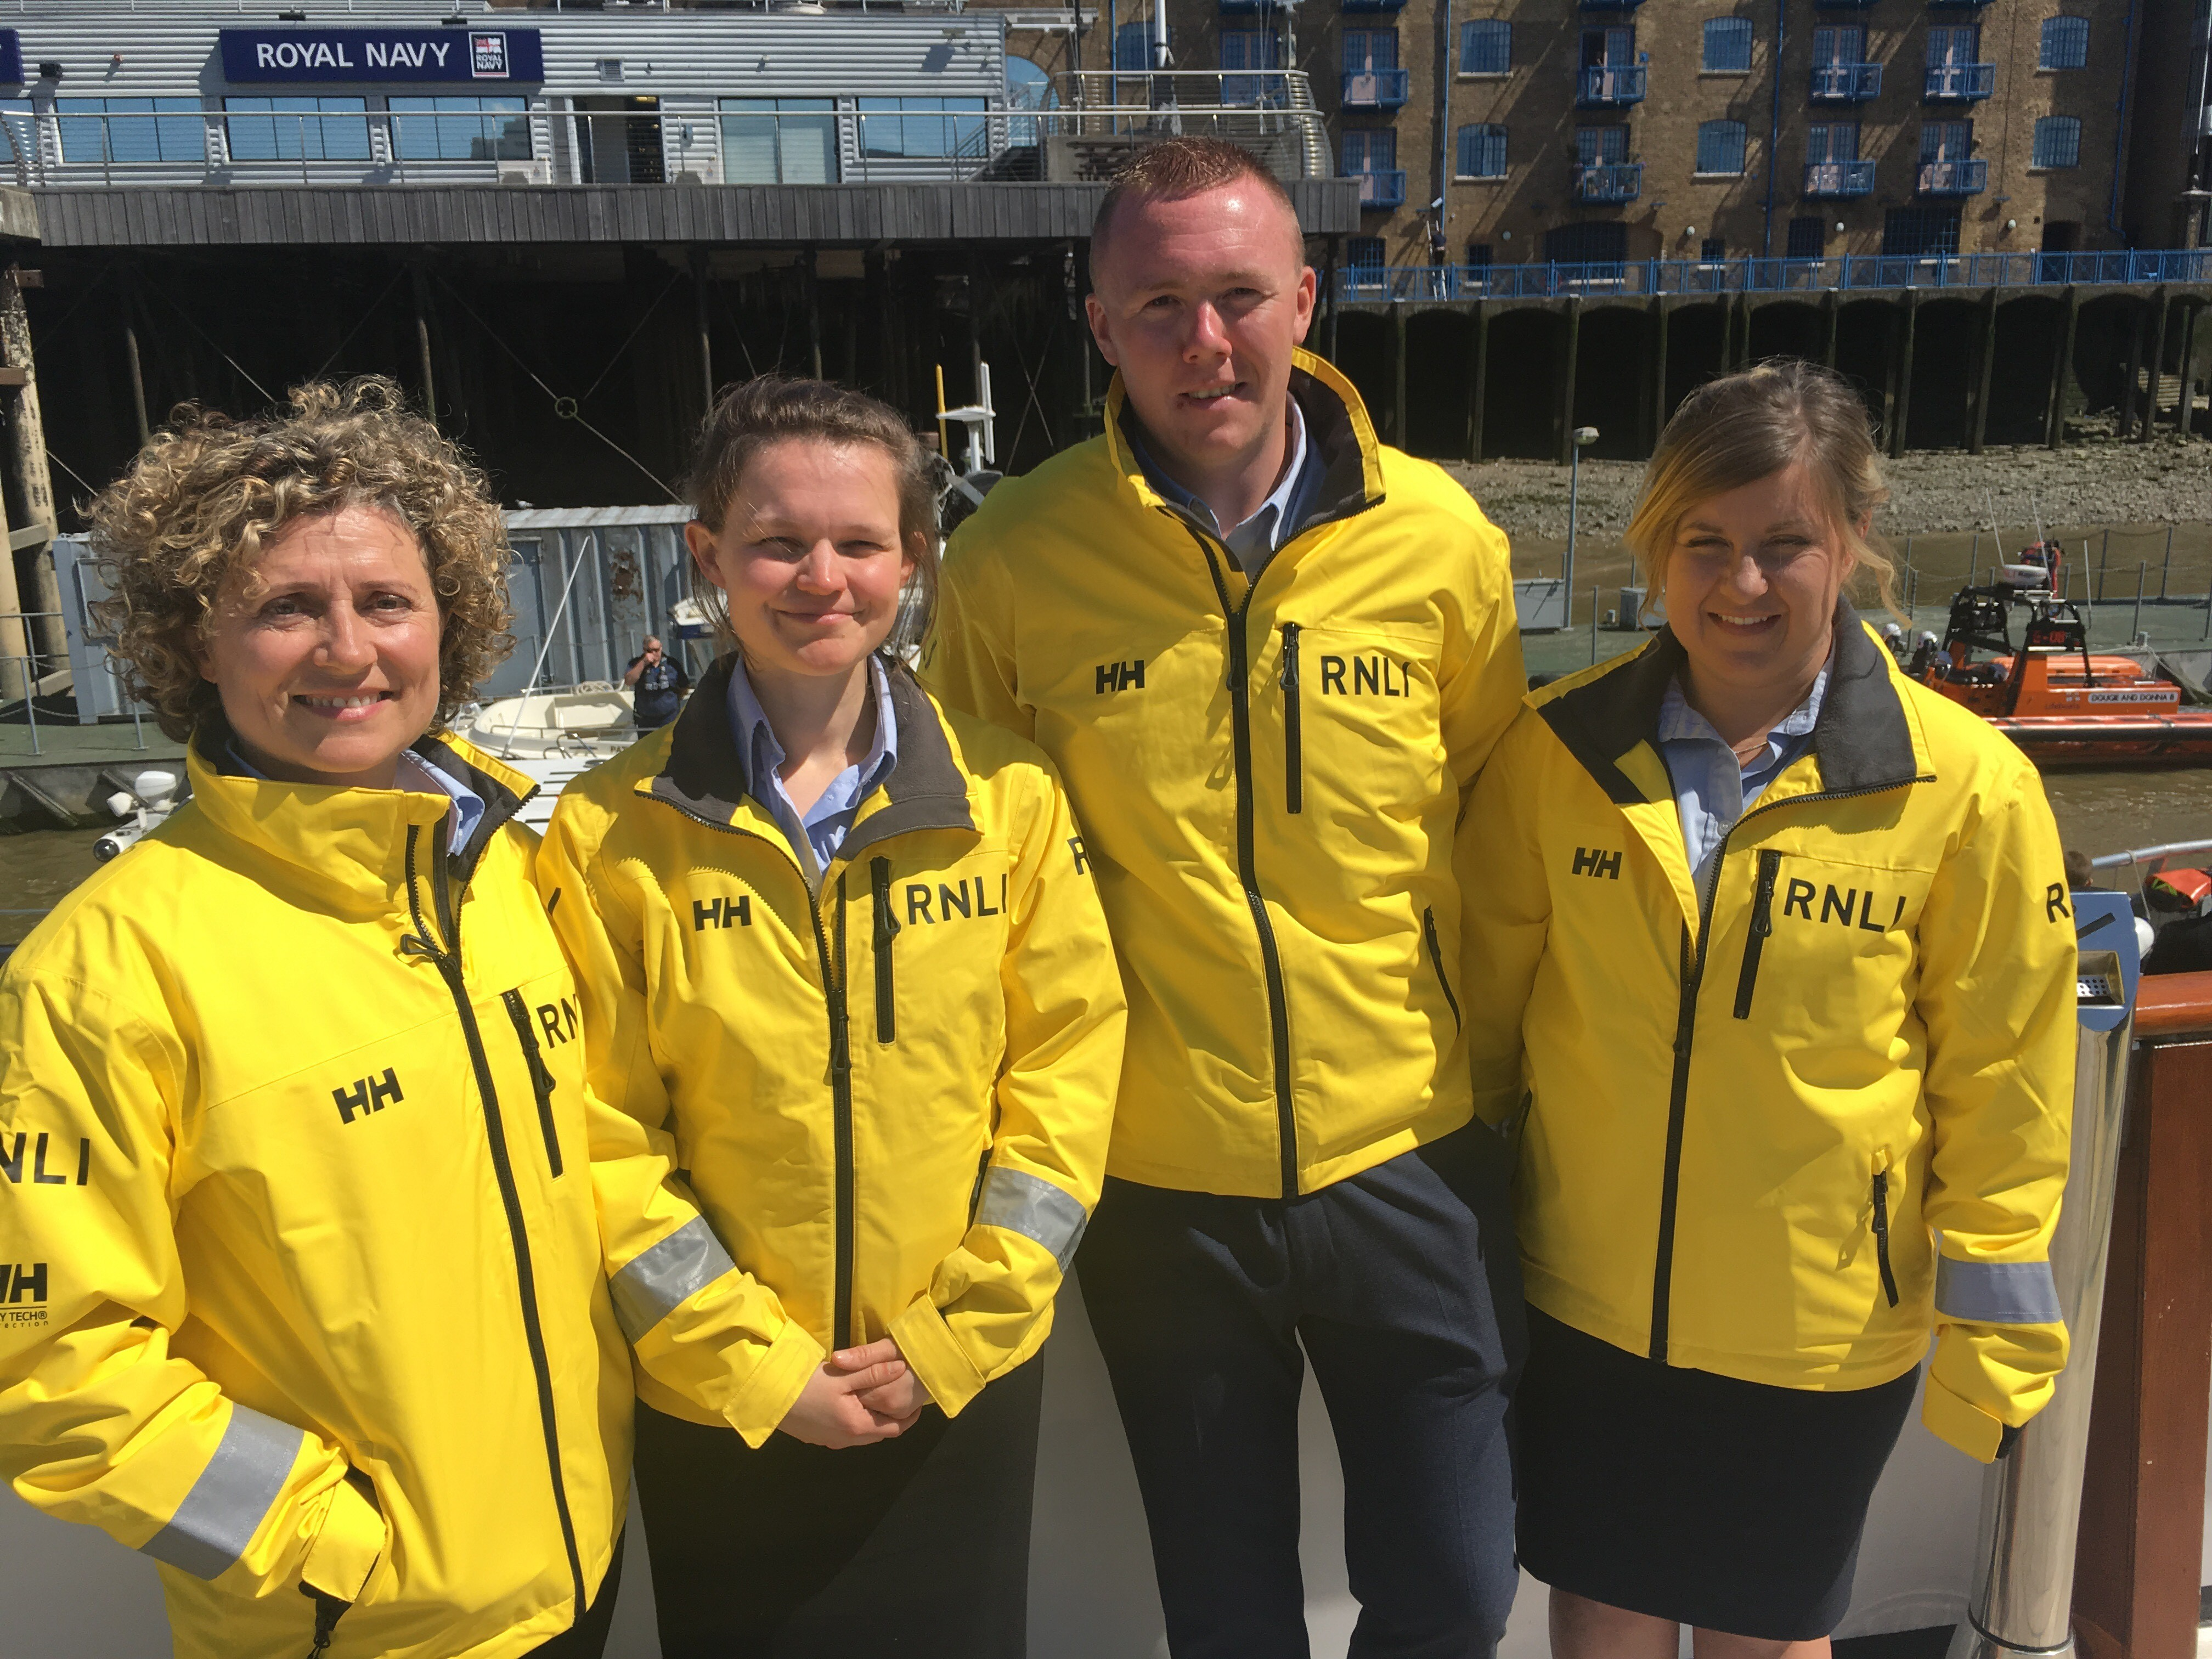 Gianna Saccomani (Teddington crew), Jenny Barnett & Steve Doherty (Tower crew) and Natalie Adams (Gravesend crew)